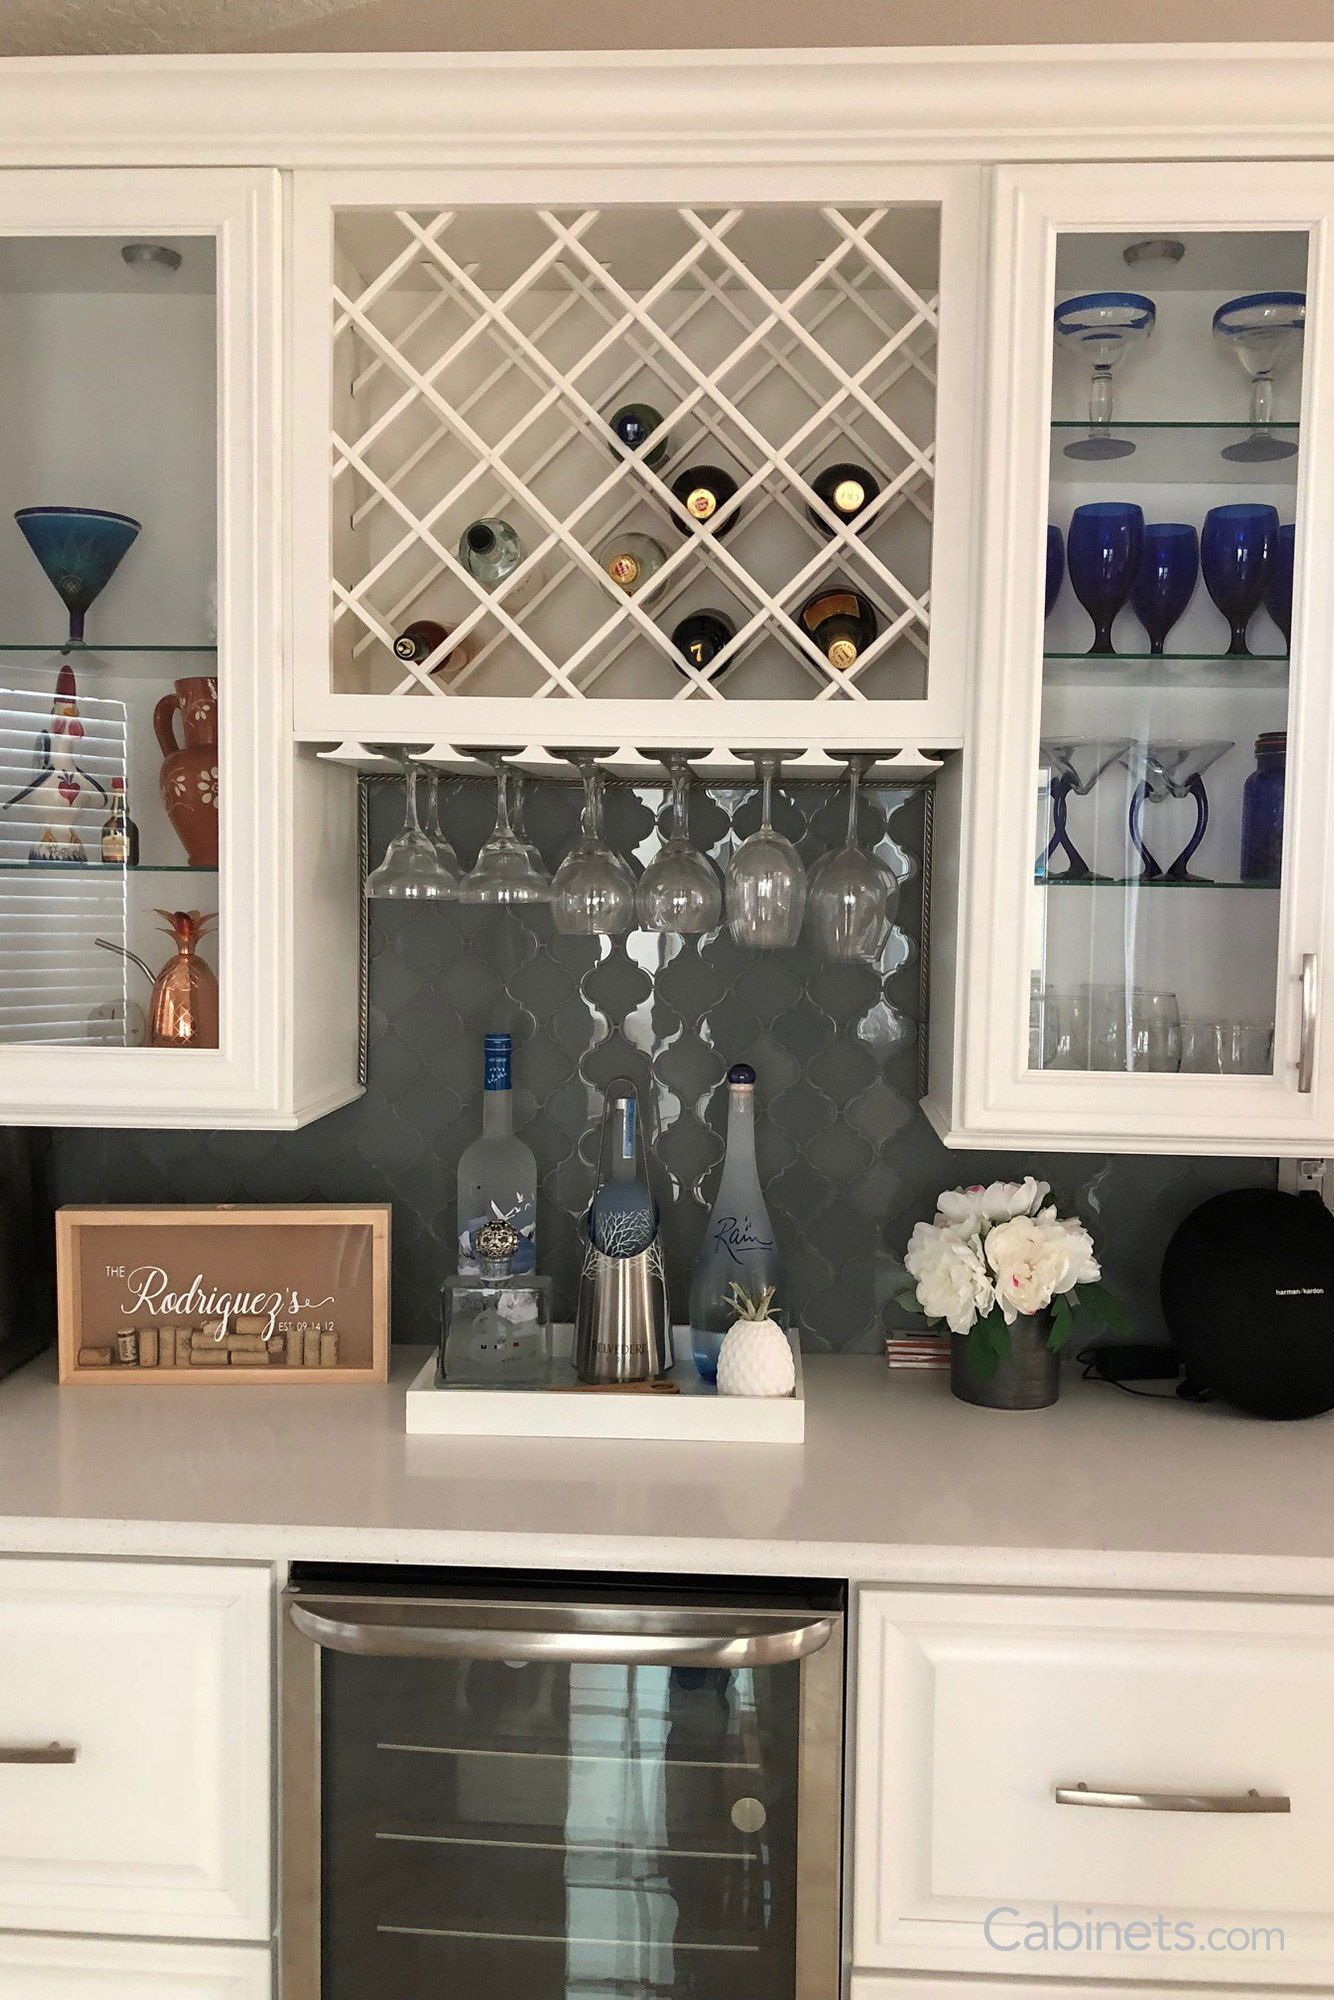 Lattice Wine Rack Stemware Holder And Glass Front Doors All The Necessities For A Perfect Bar S Home Wine Bar Built In Wine Rack Kitchen Cabinet Wine Rack